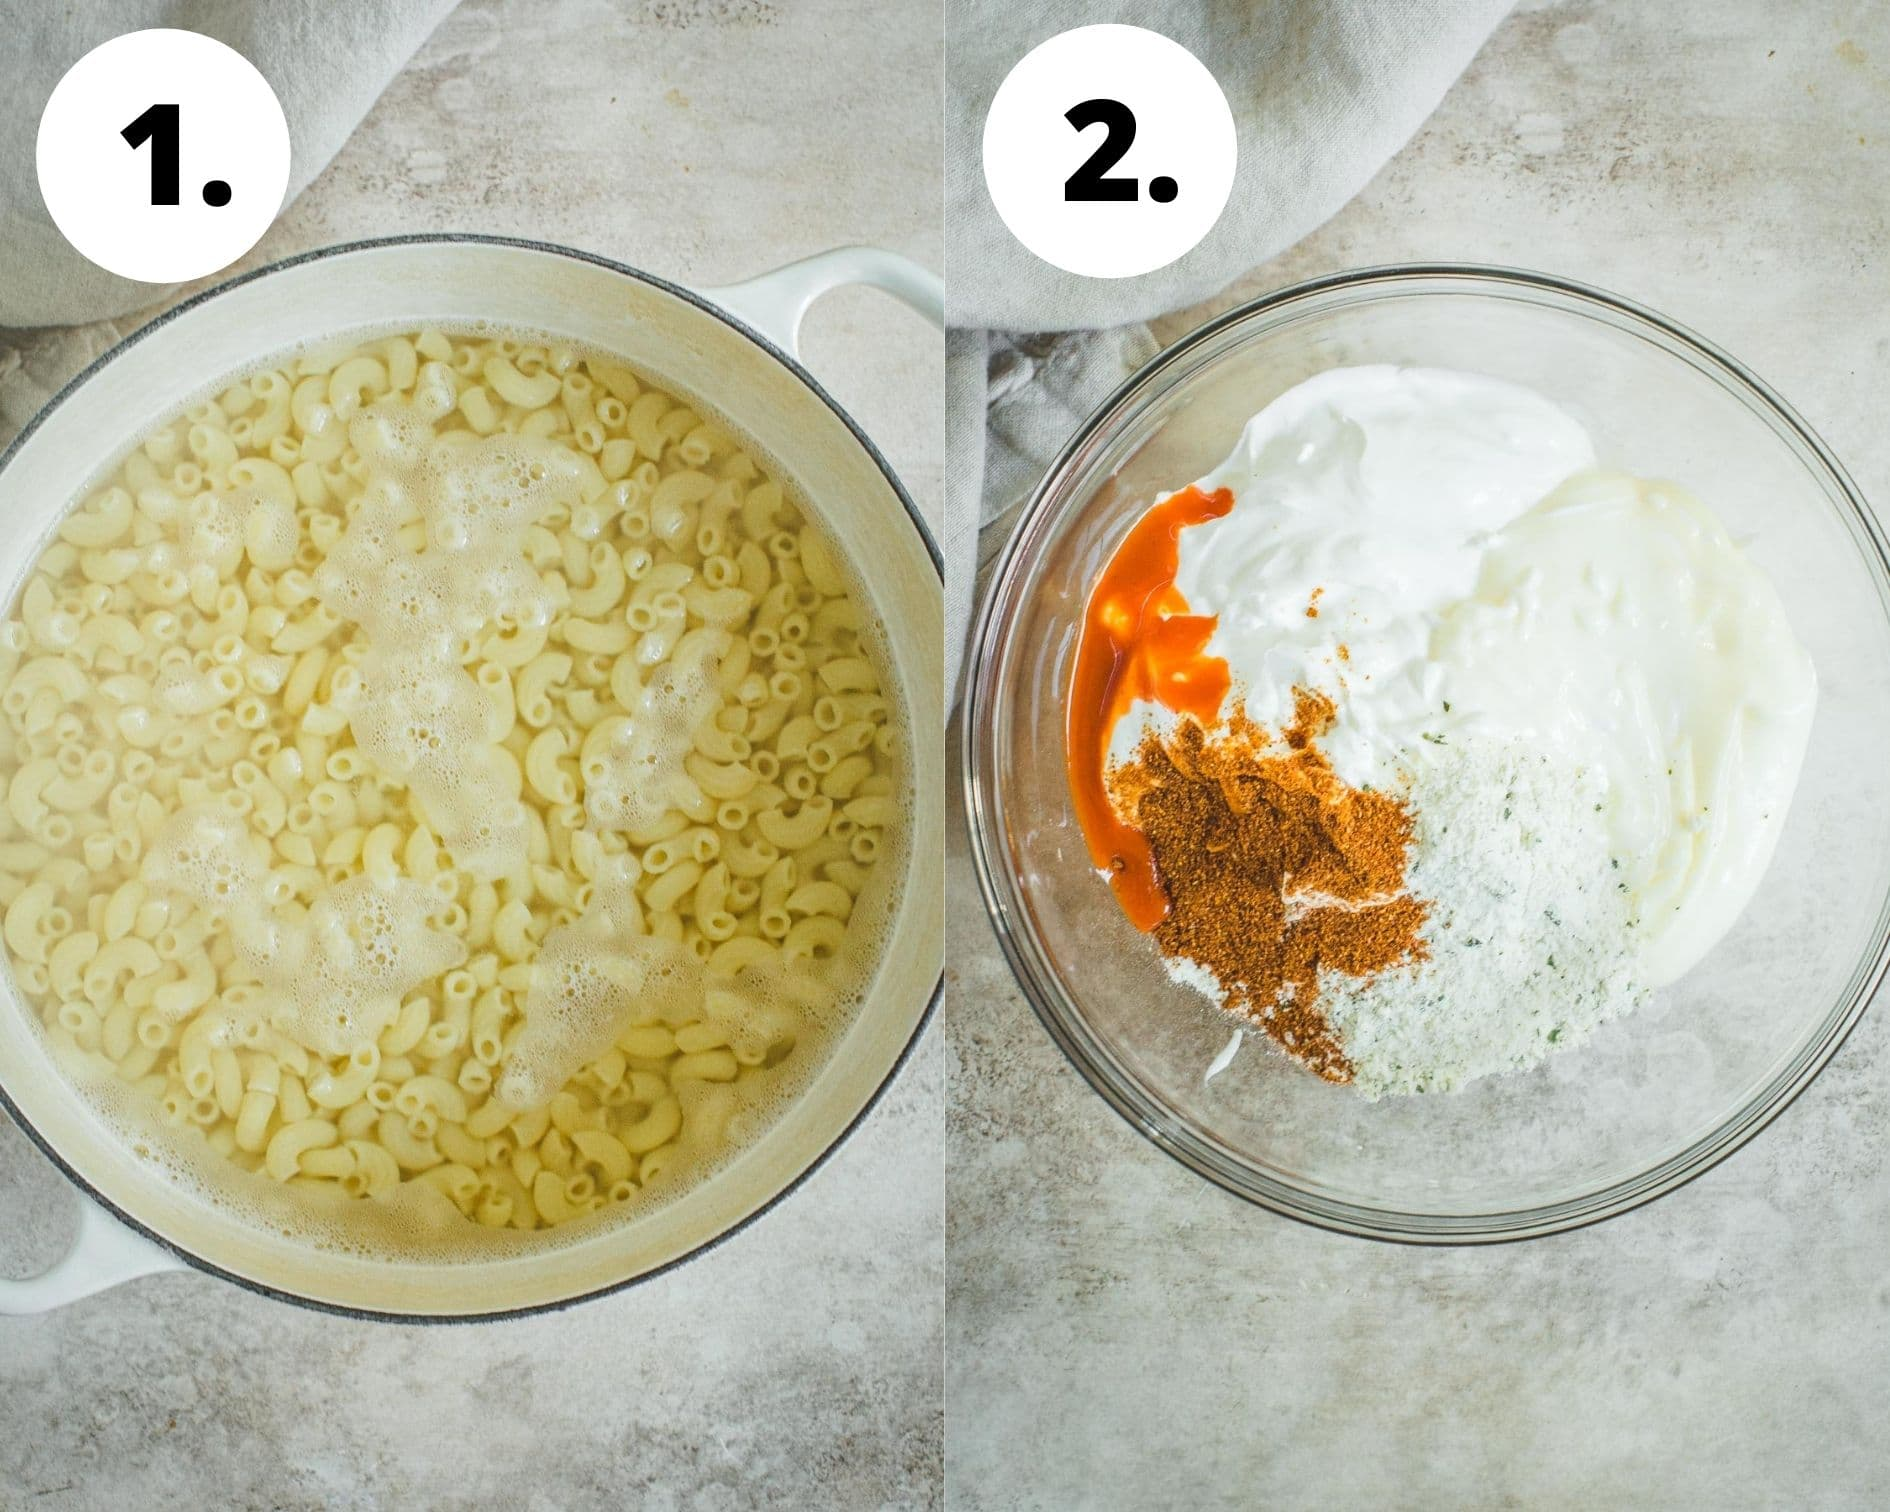 Process steps 1 and 2 for making bacon ranch pasta salad.